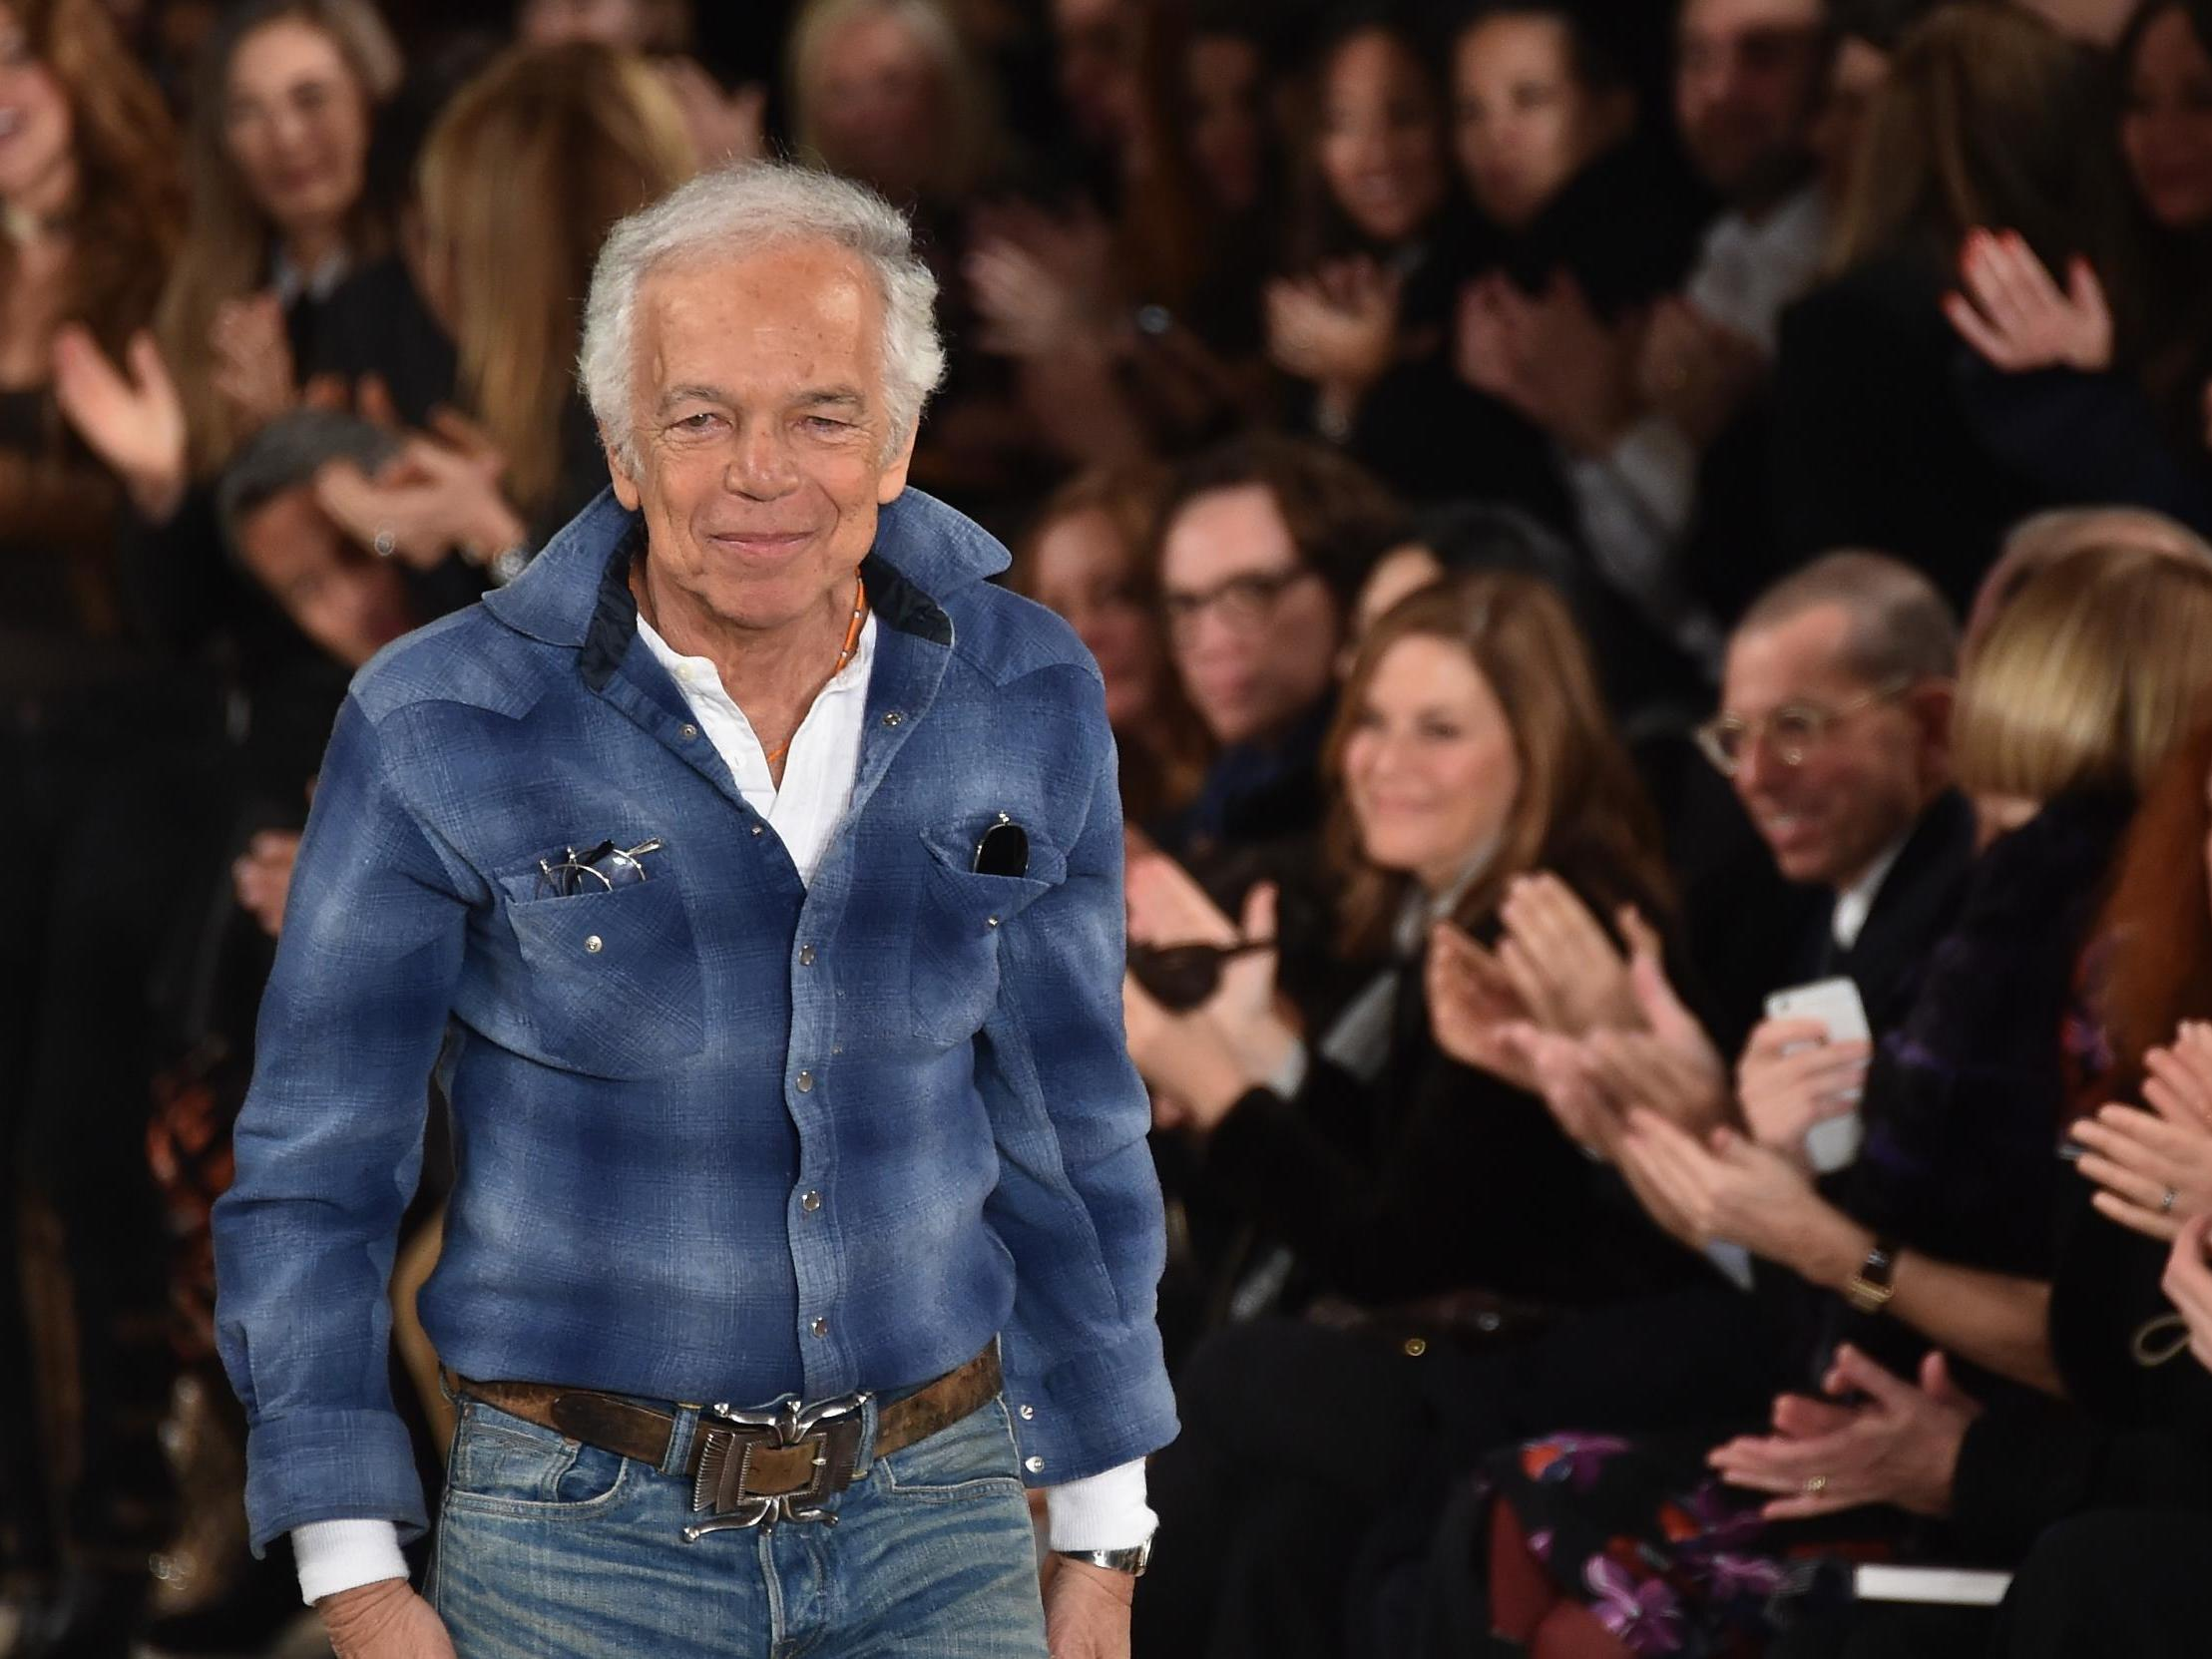 Ralph Lauren Says He Hates Fashion And Never Thought Of Himself As A Designer The Independent The Independent